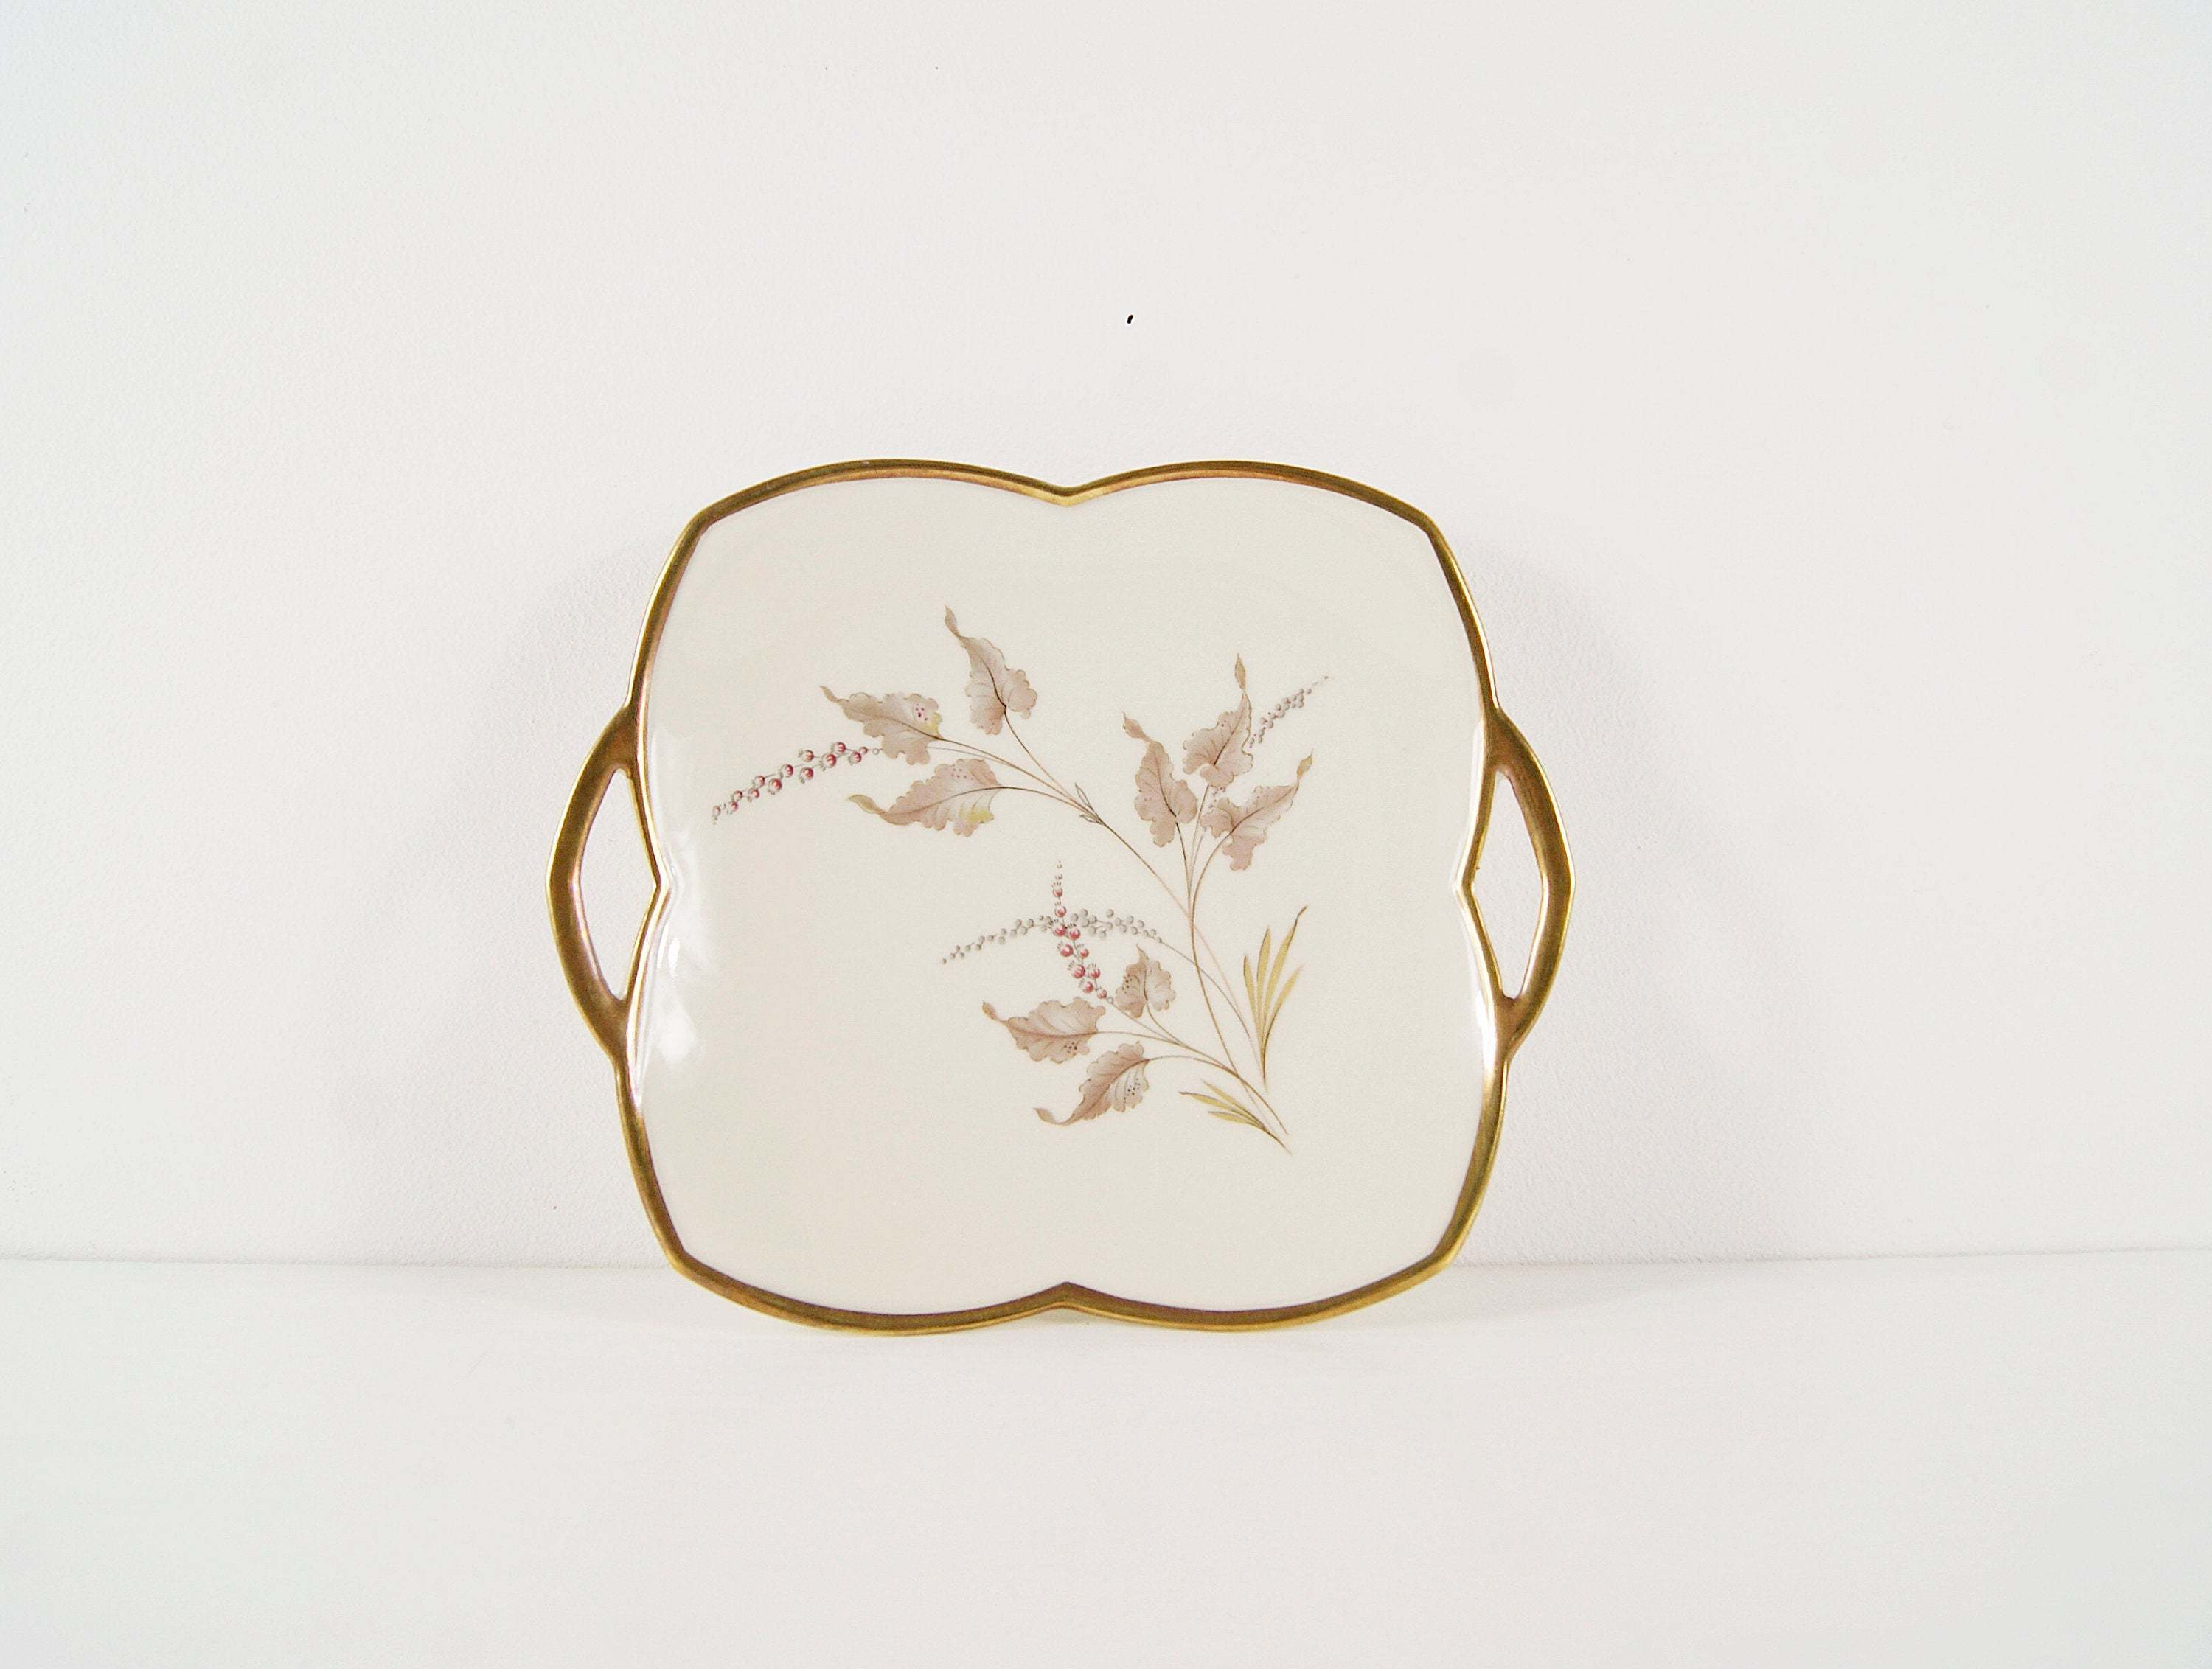 55dfb241894c Alka Art Plate Silvana With Floral Décor, 1960s Porcelain, Serving Bowl,  Collection Plate, Wall Plate, Cake Plate